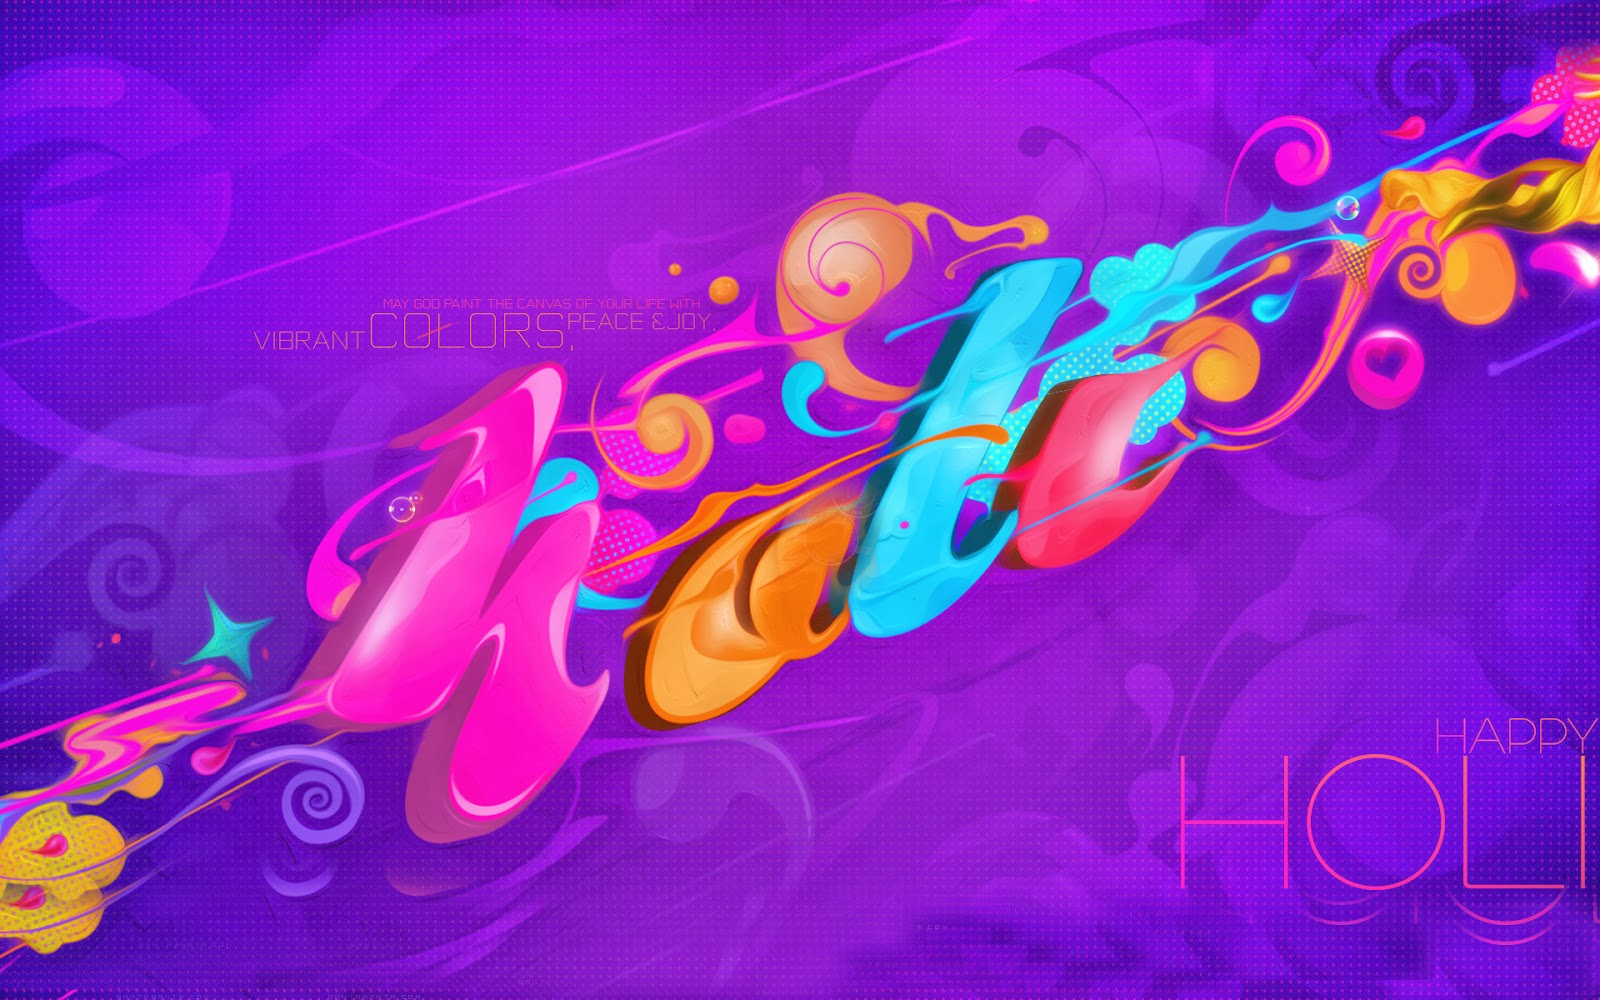 Happy Holi 2014 Animated 3D wallpapers Download Happy Holi 1600x1000